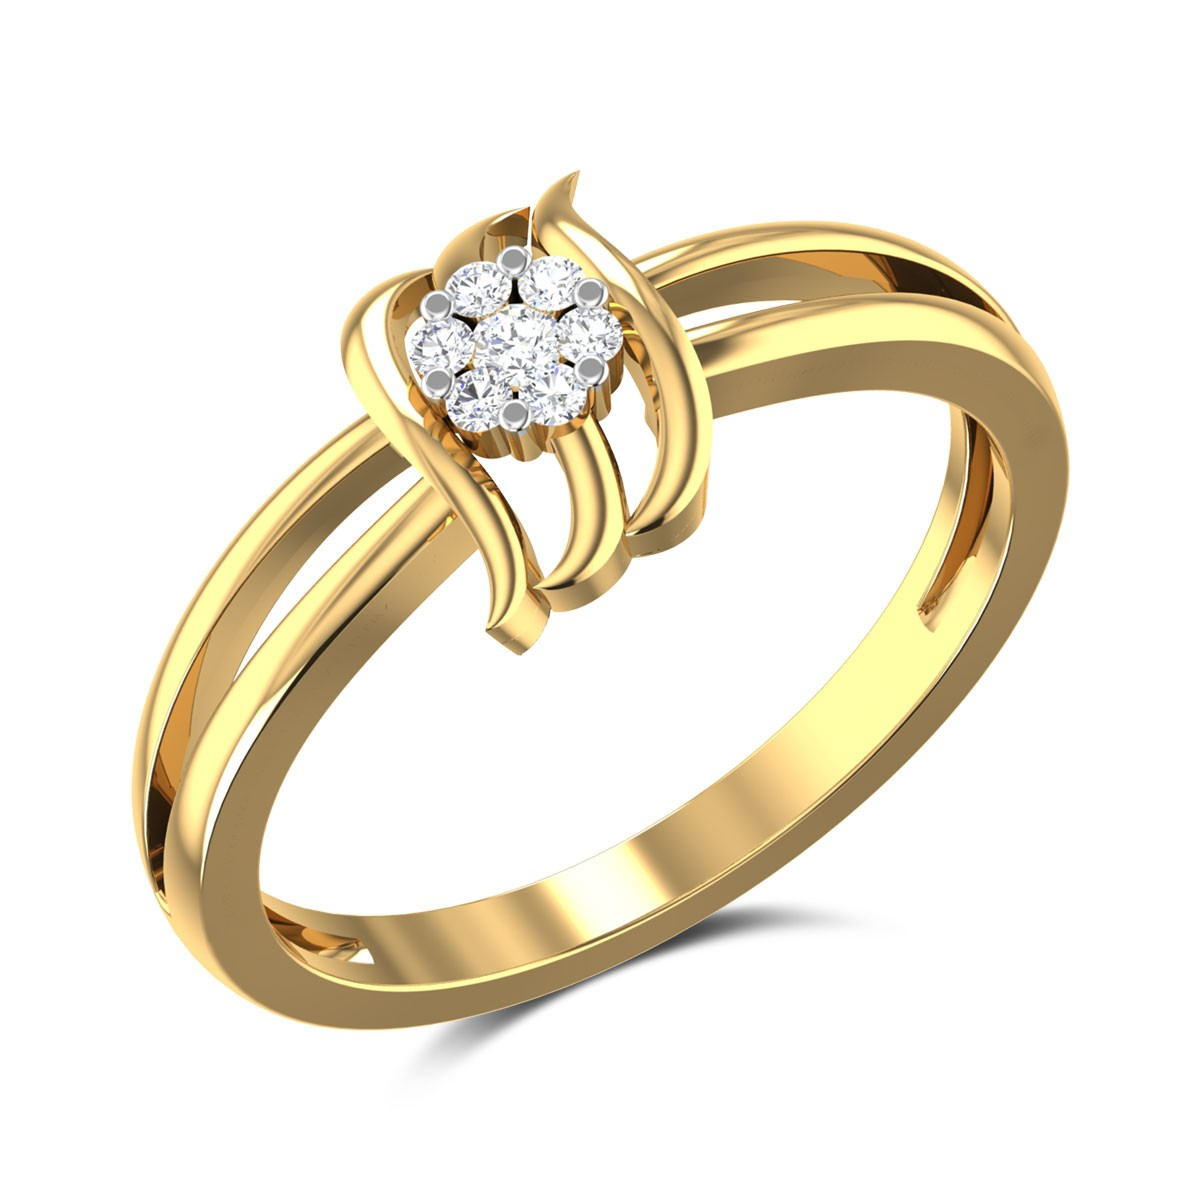 Mariana Diamond Ring